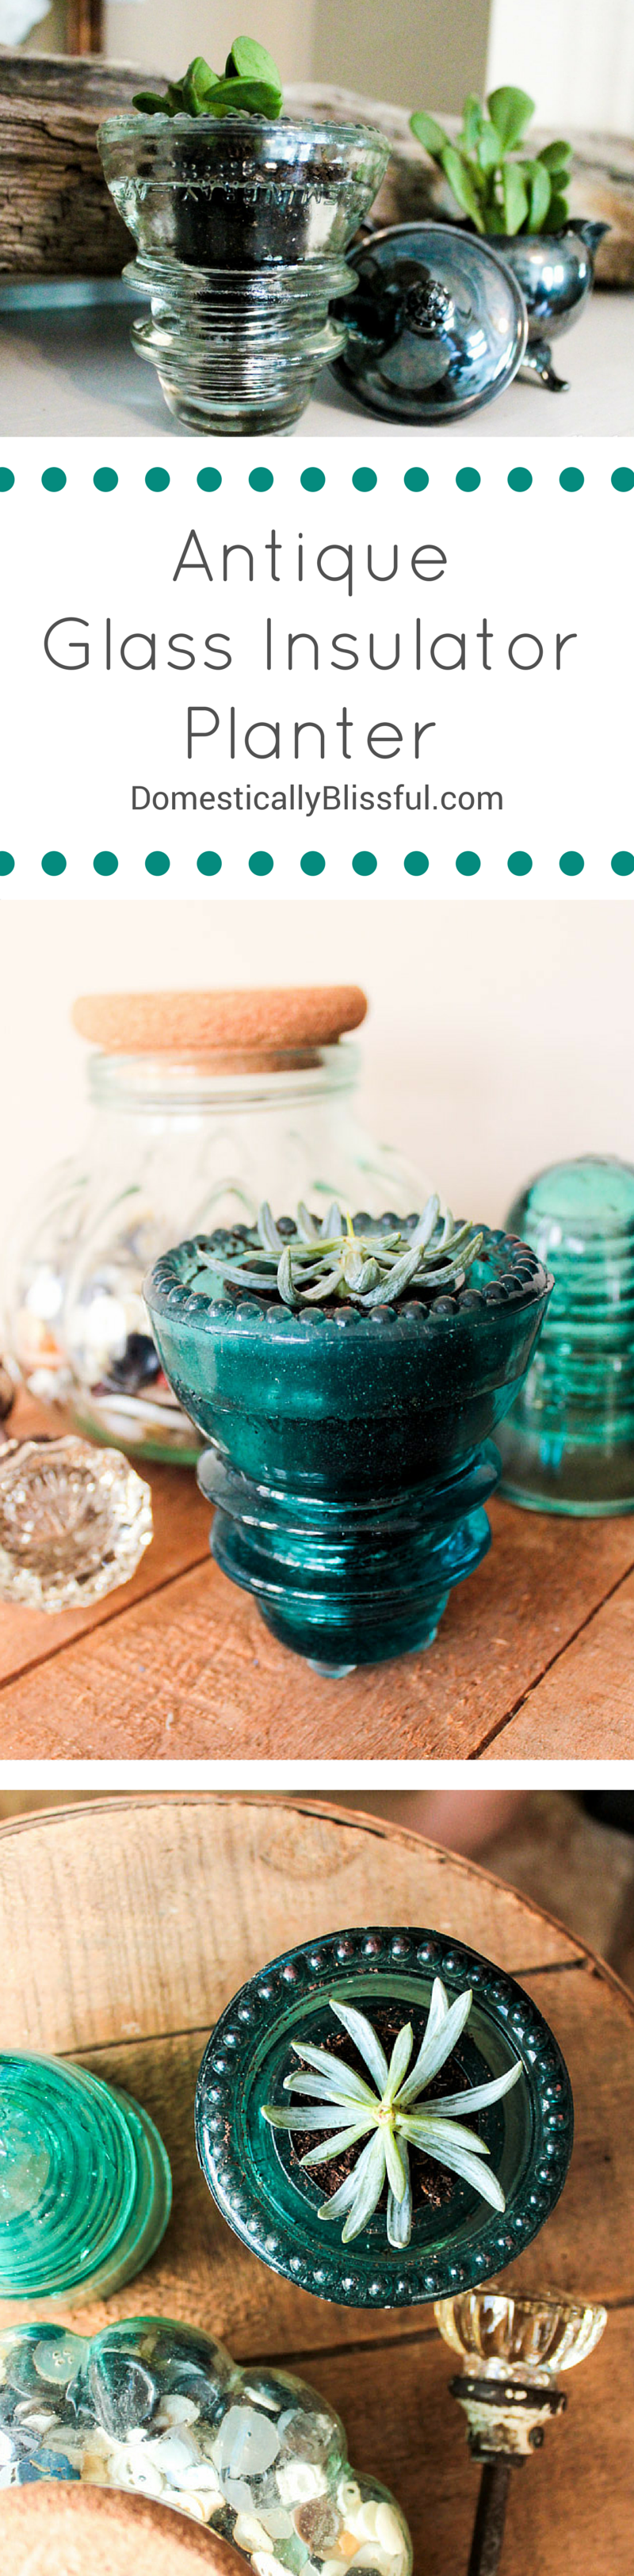 DIY Antique Glass Insulator Planter